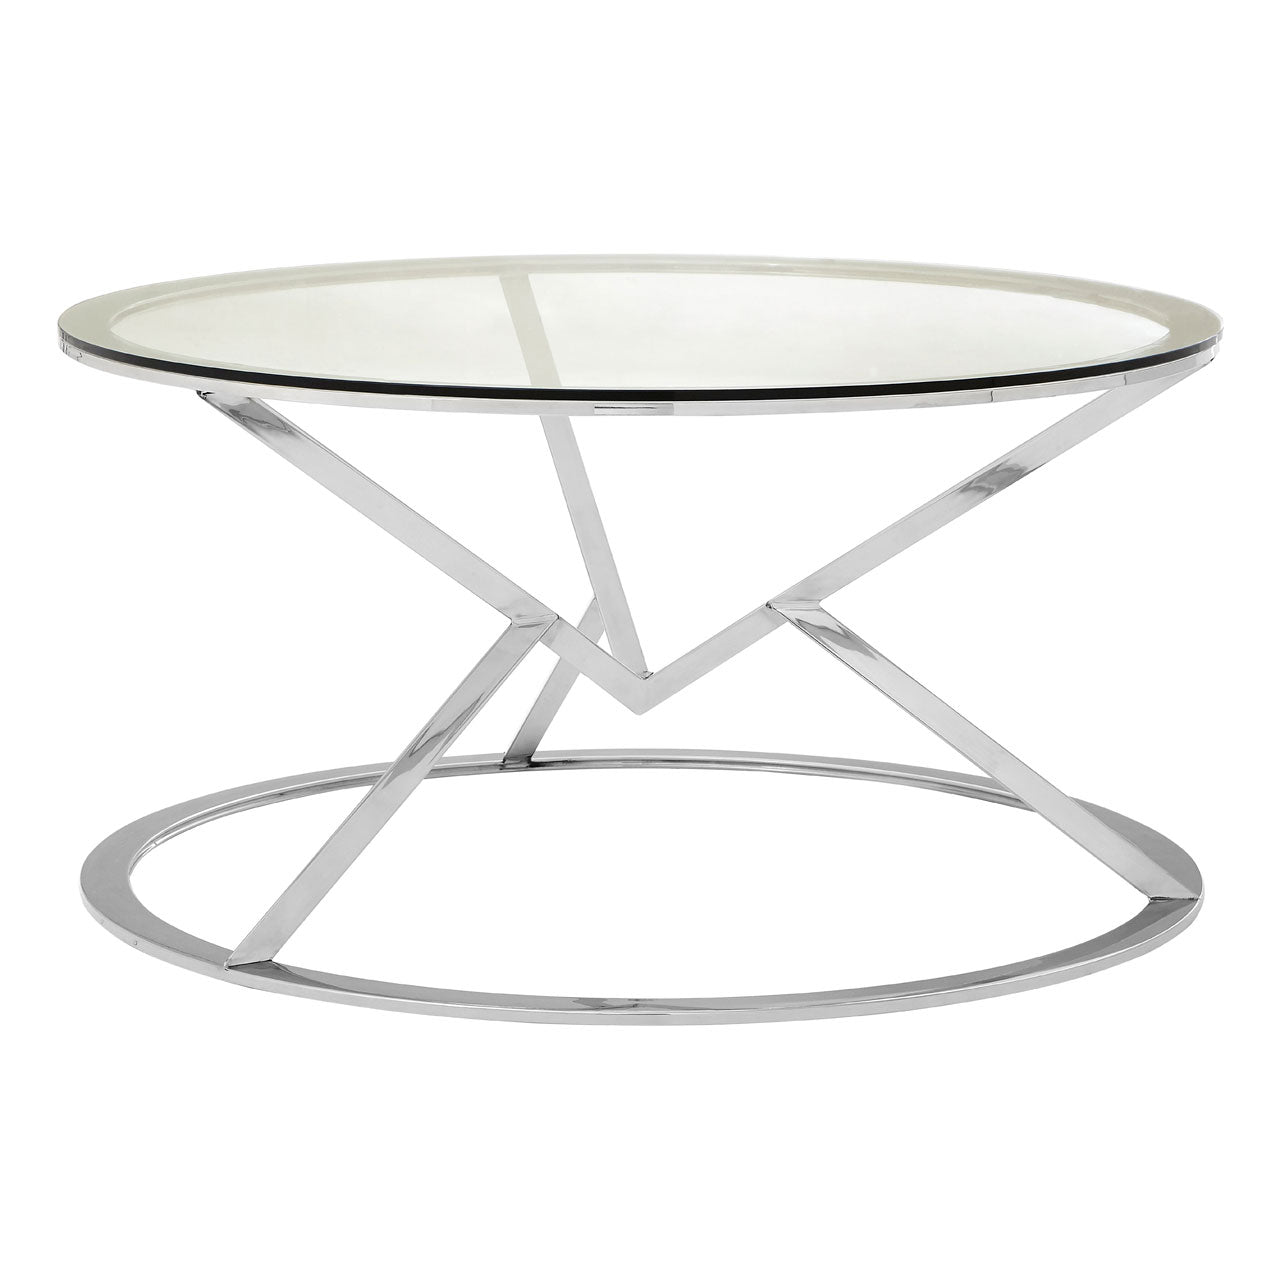 Allure Round Coffee Table Chrome - Ezzo